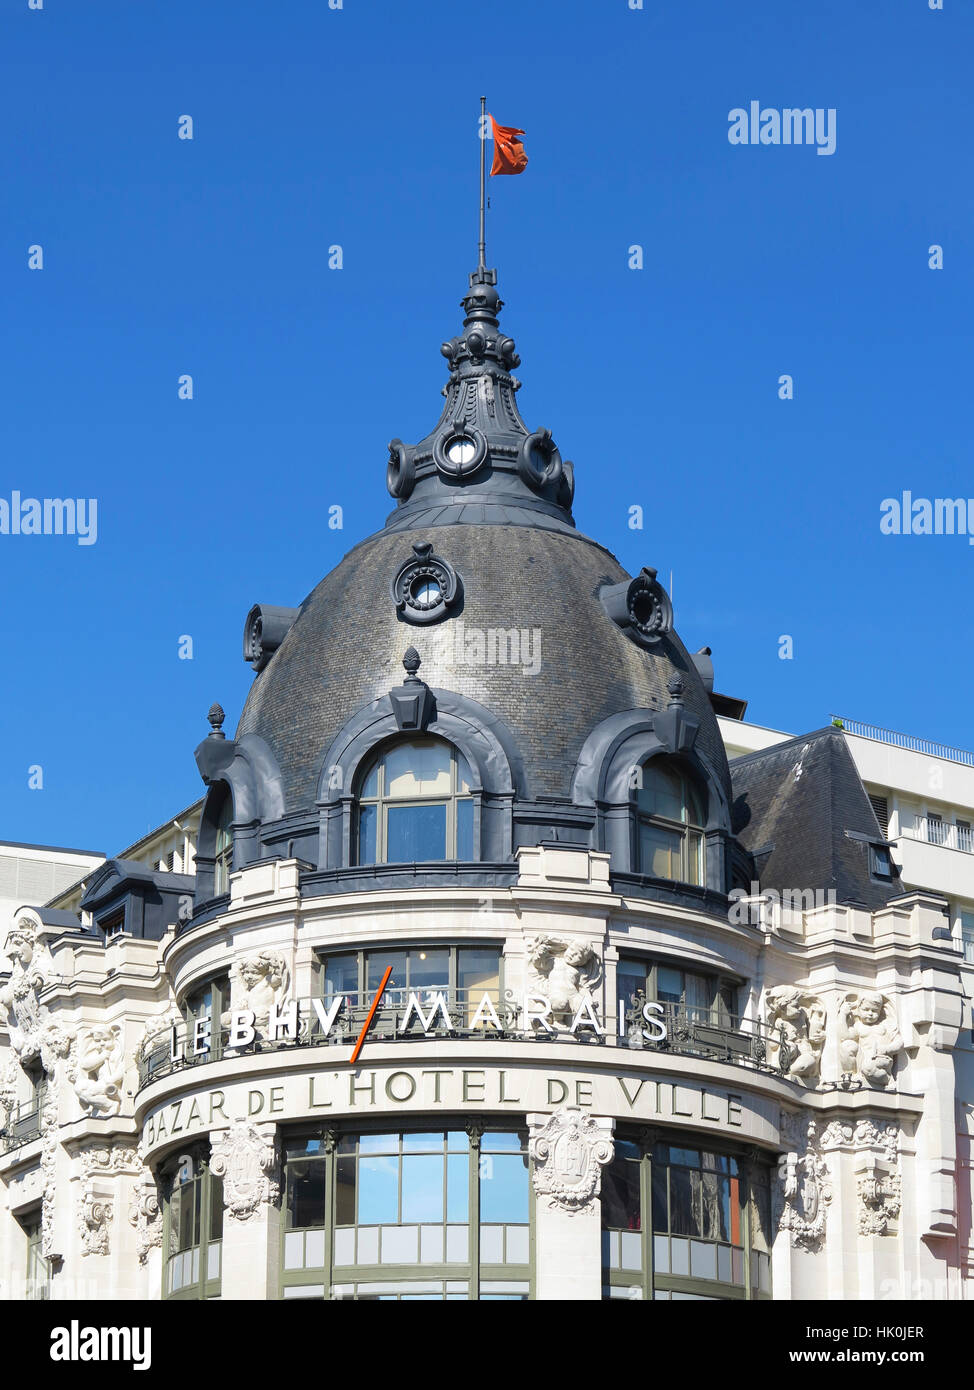 paris bhv marais bazar de stock photos paris bhv marais bazar de stock images alamy. Black Bedroom Furniture Sets. Home Design Ideas